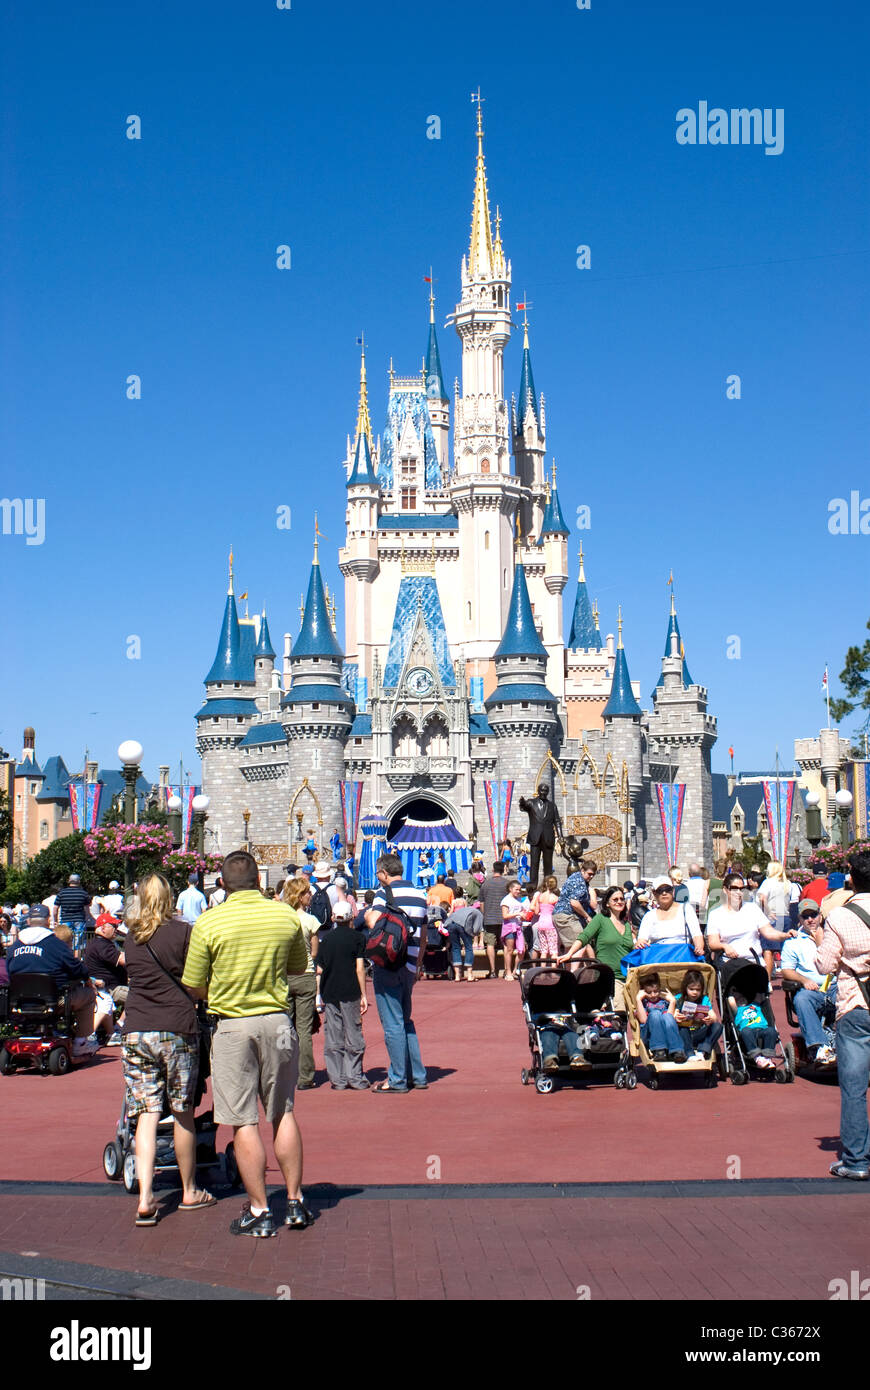 cinderella schloss walt disney world resort orlando